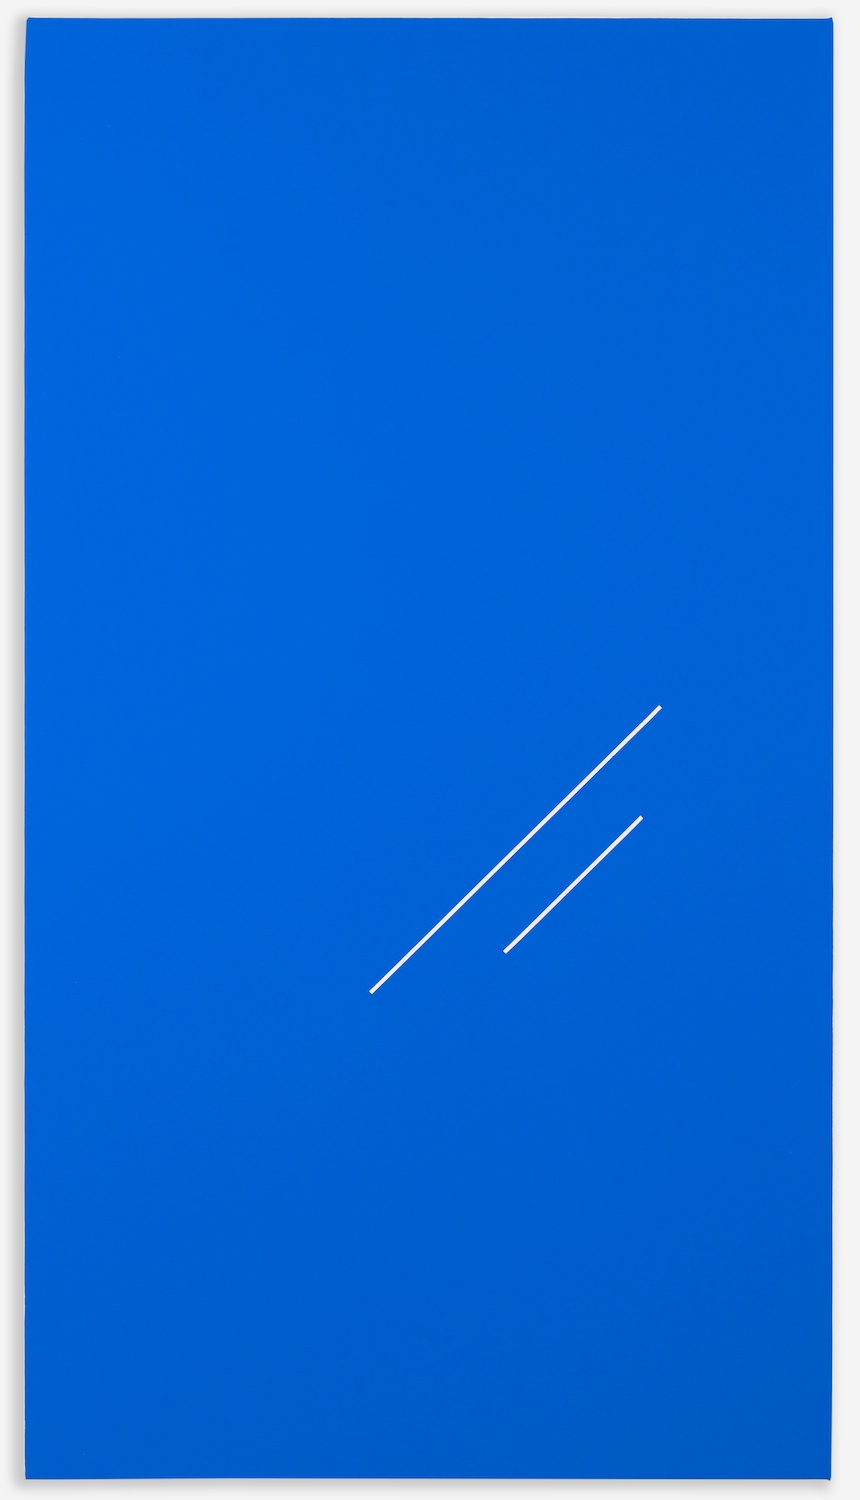 Paul Cowan  BCEAUSE THE SKY IS BULE   2013 Chroma-key blue paint on canvas  48h x 26w  PC094